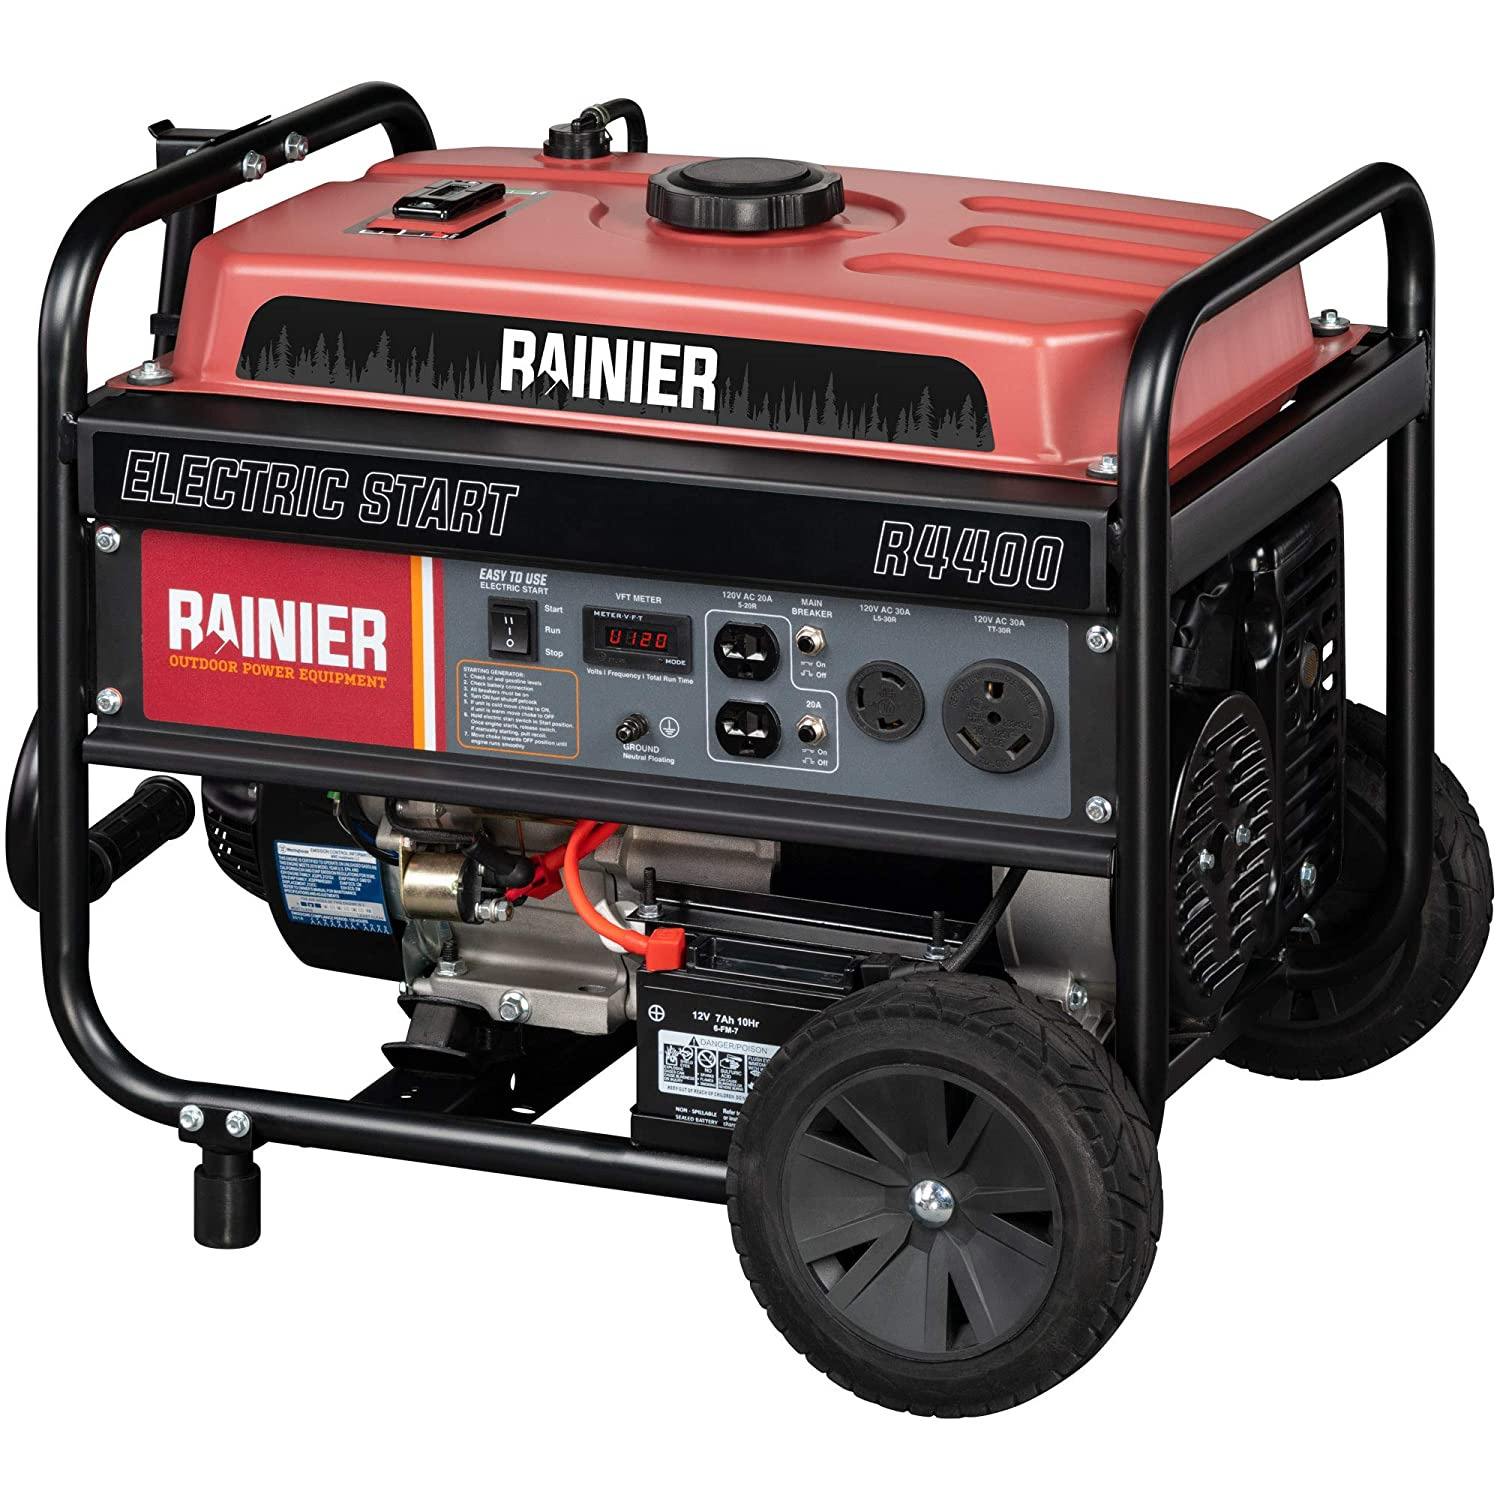 Rainier R4400 Portable Generator with Electric Start – 4400 Peak Watts 3600 Rated Watts – Gas Powered – CARB Compliant